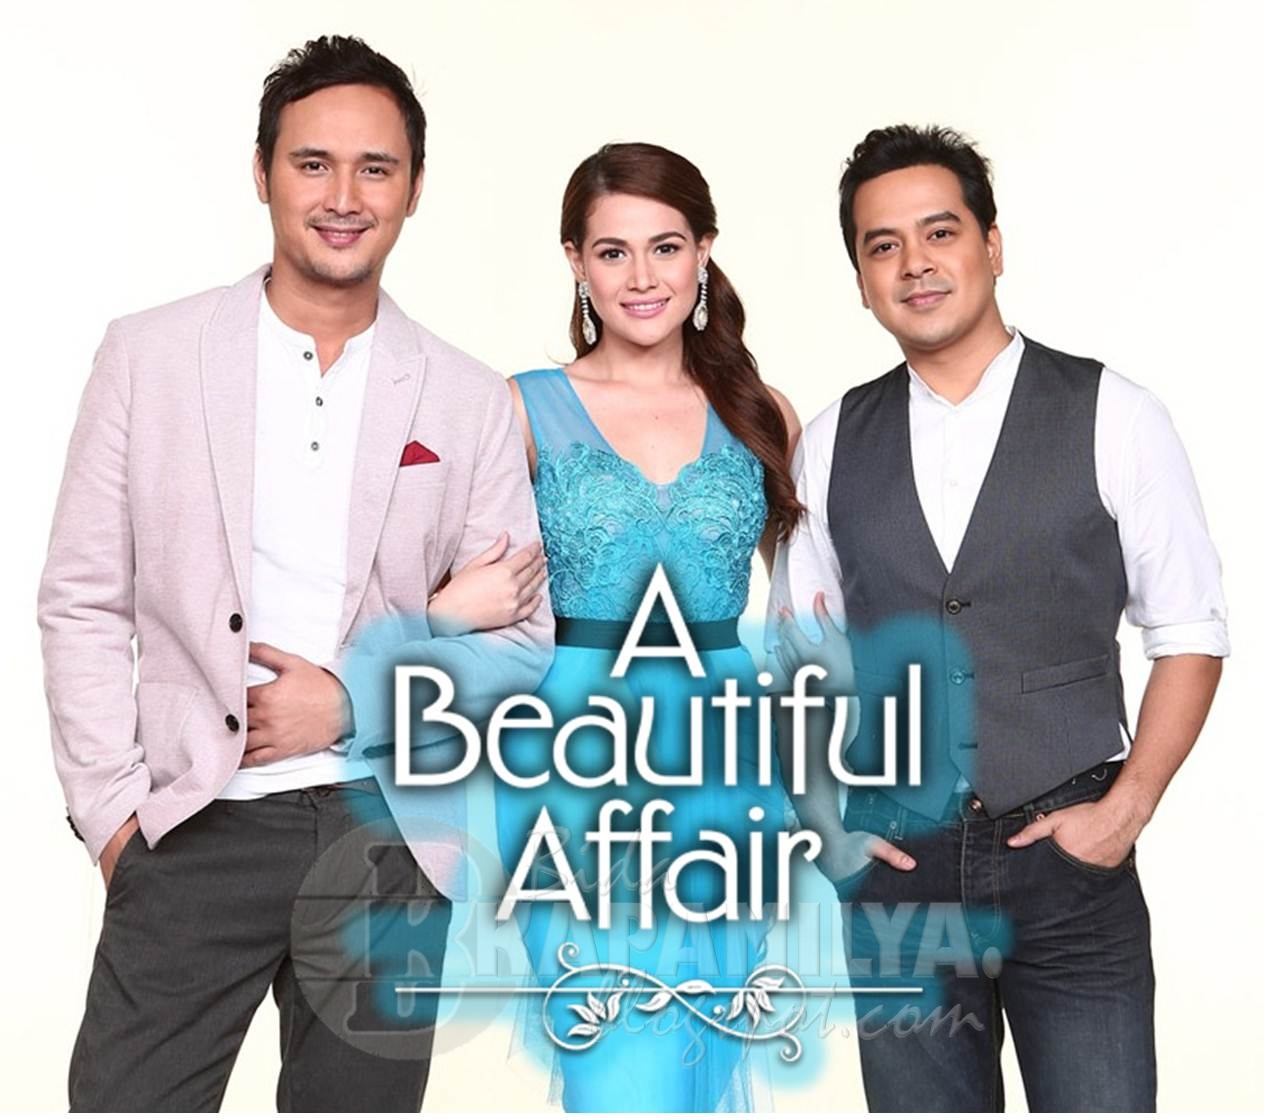 A BEAUTIFUL AFFAIR - OCT. 29, 2012 PART 3/4